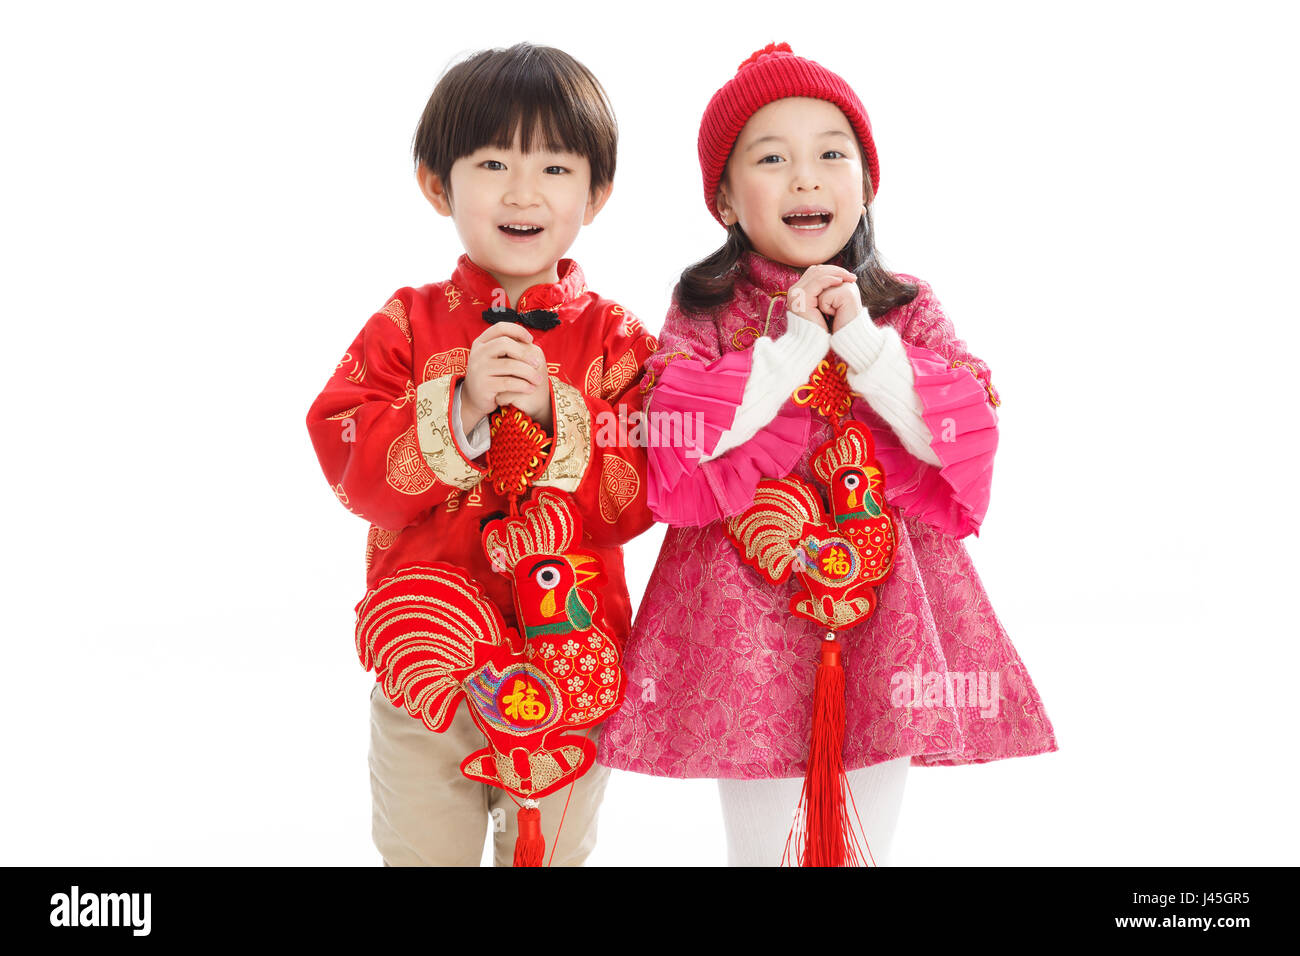 Two children celebrate the new year - Stock Image